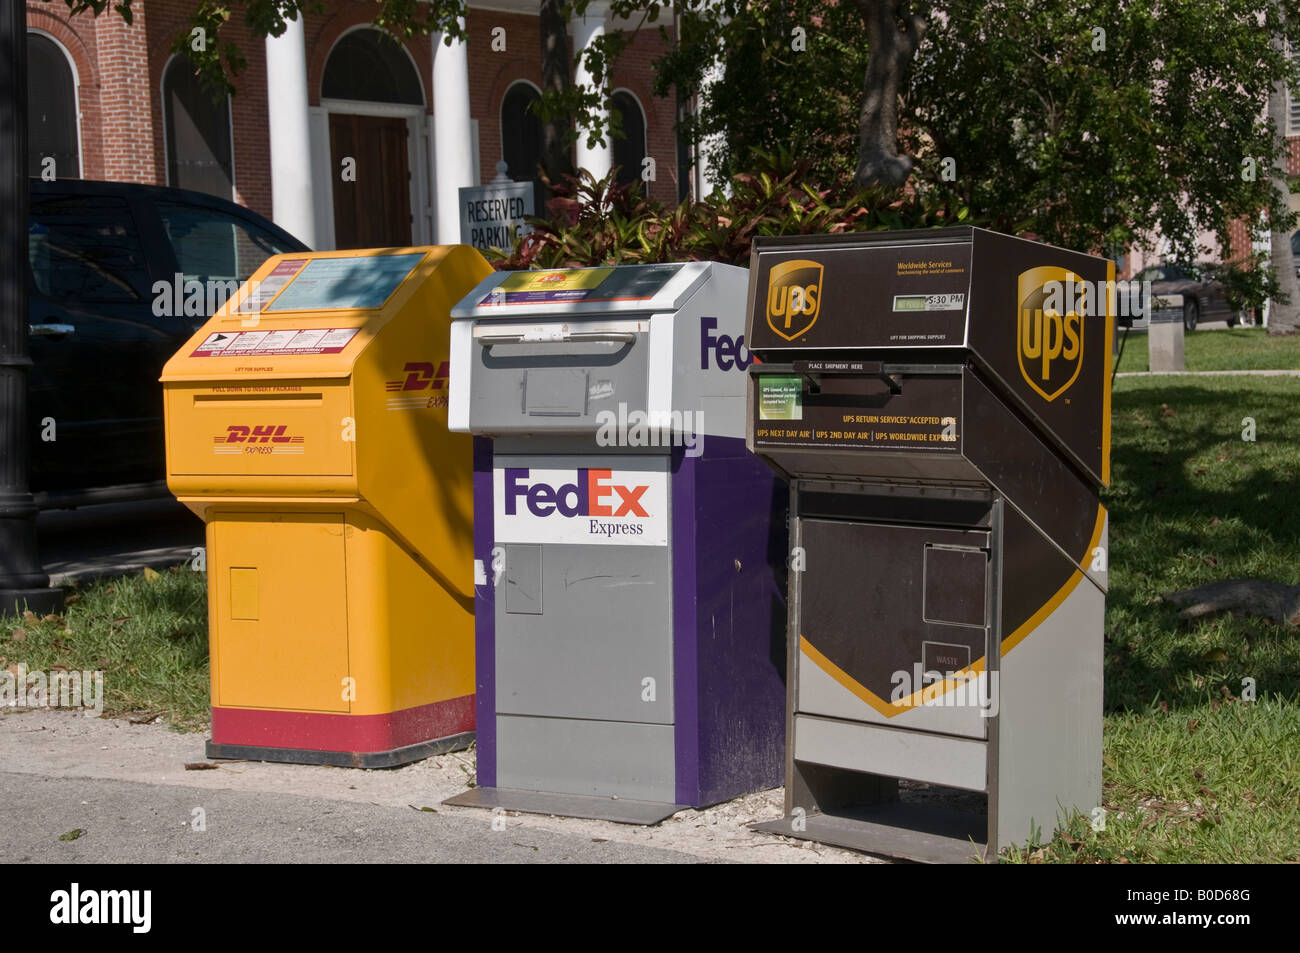 Cost of color printing at fedex - Drop Off Boxes For Dhl Fedex And Ups Next To Each Other In Key West Download Image Fe Fedex Color Printing Cost